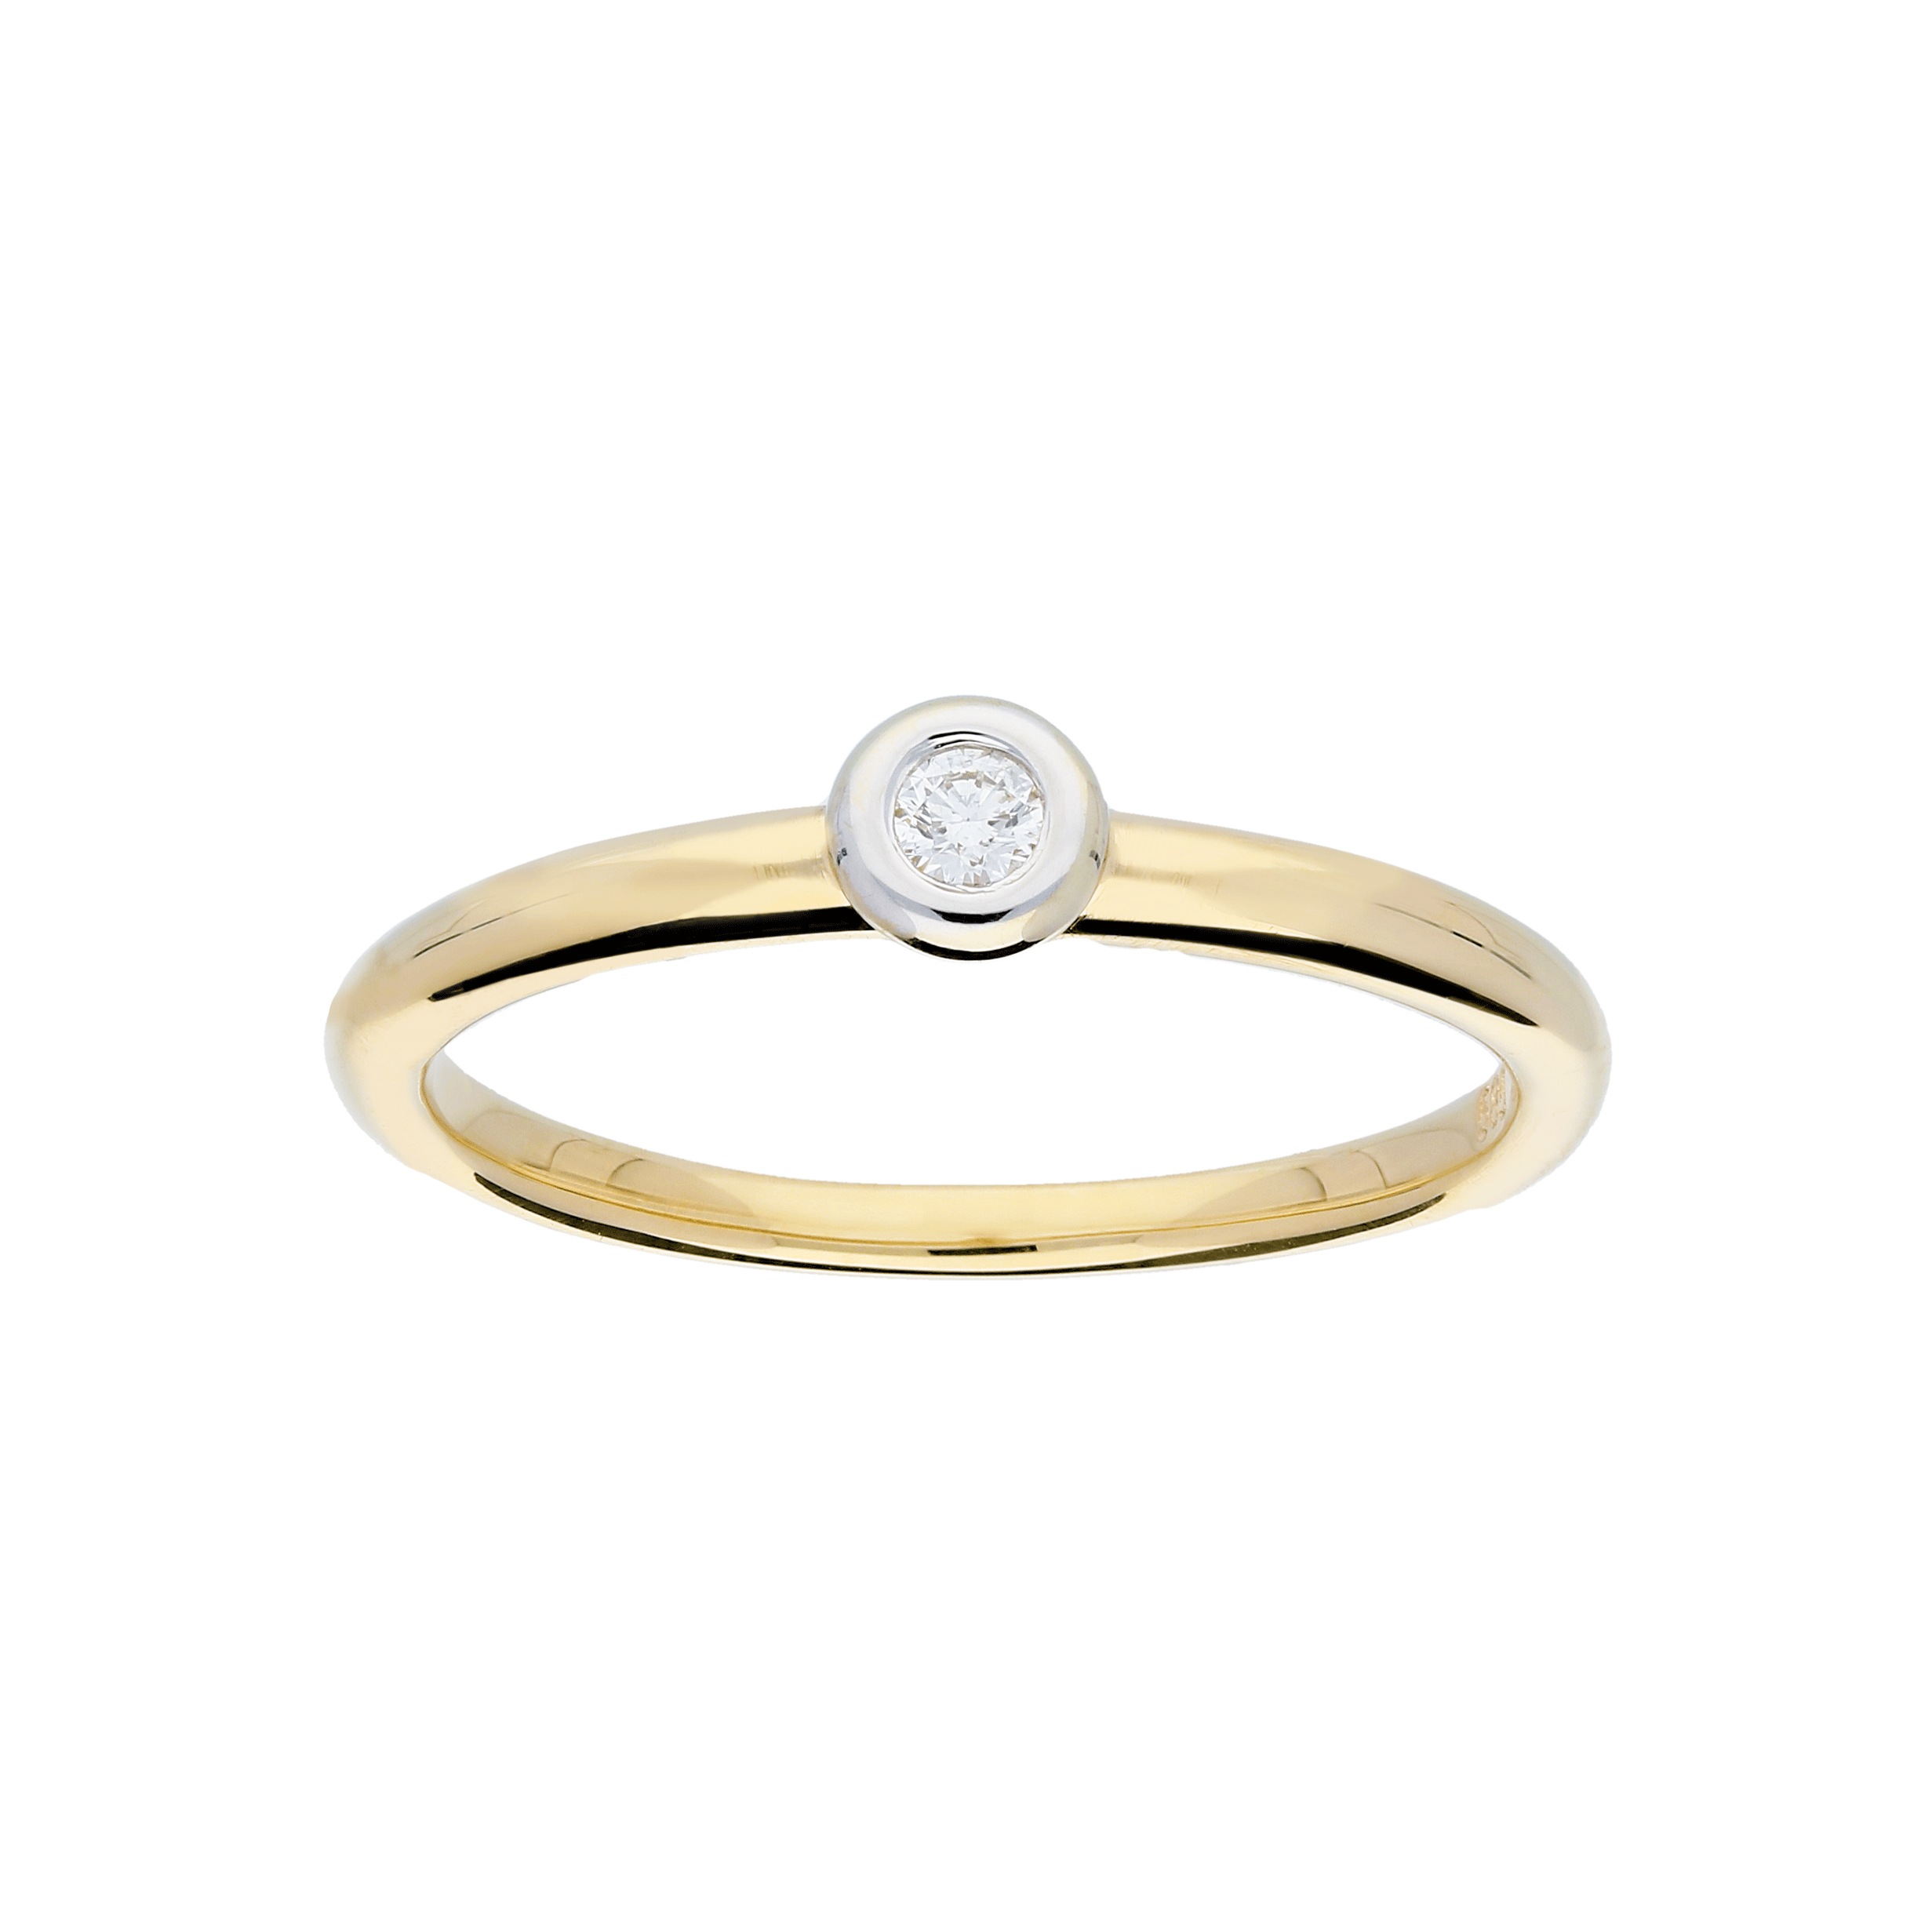 Glow Gouden Ring Bicolor Mat Glanzend Diamant 1 0.04ct G si 214.5201.56